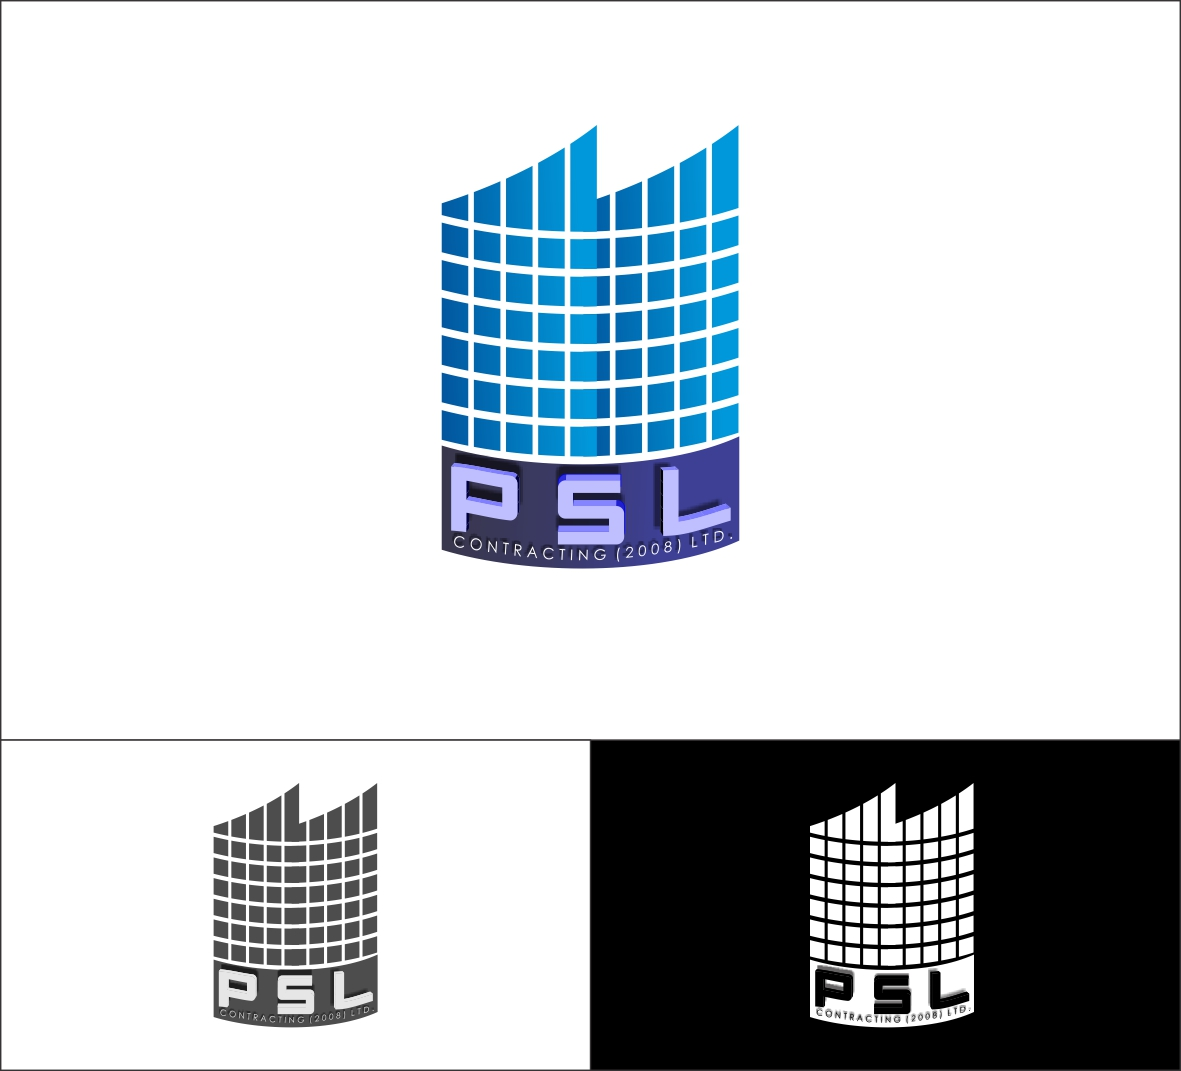 Logo Design by Hudy Wake - Entry No. 20 in the Logo Design Contest PSL Contracting (2008) Ltd. Logo Design.